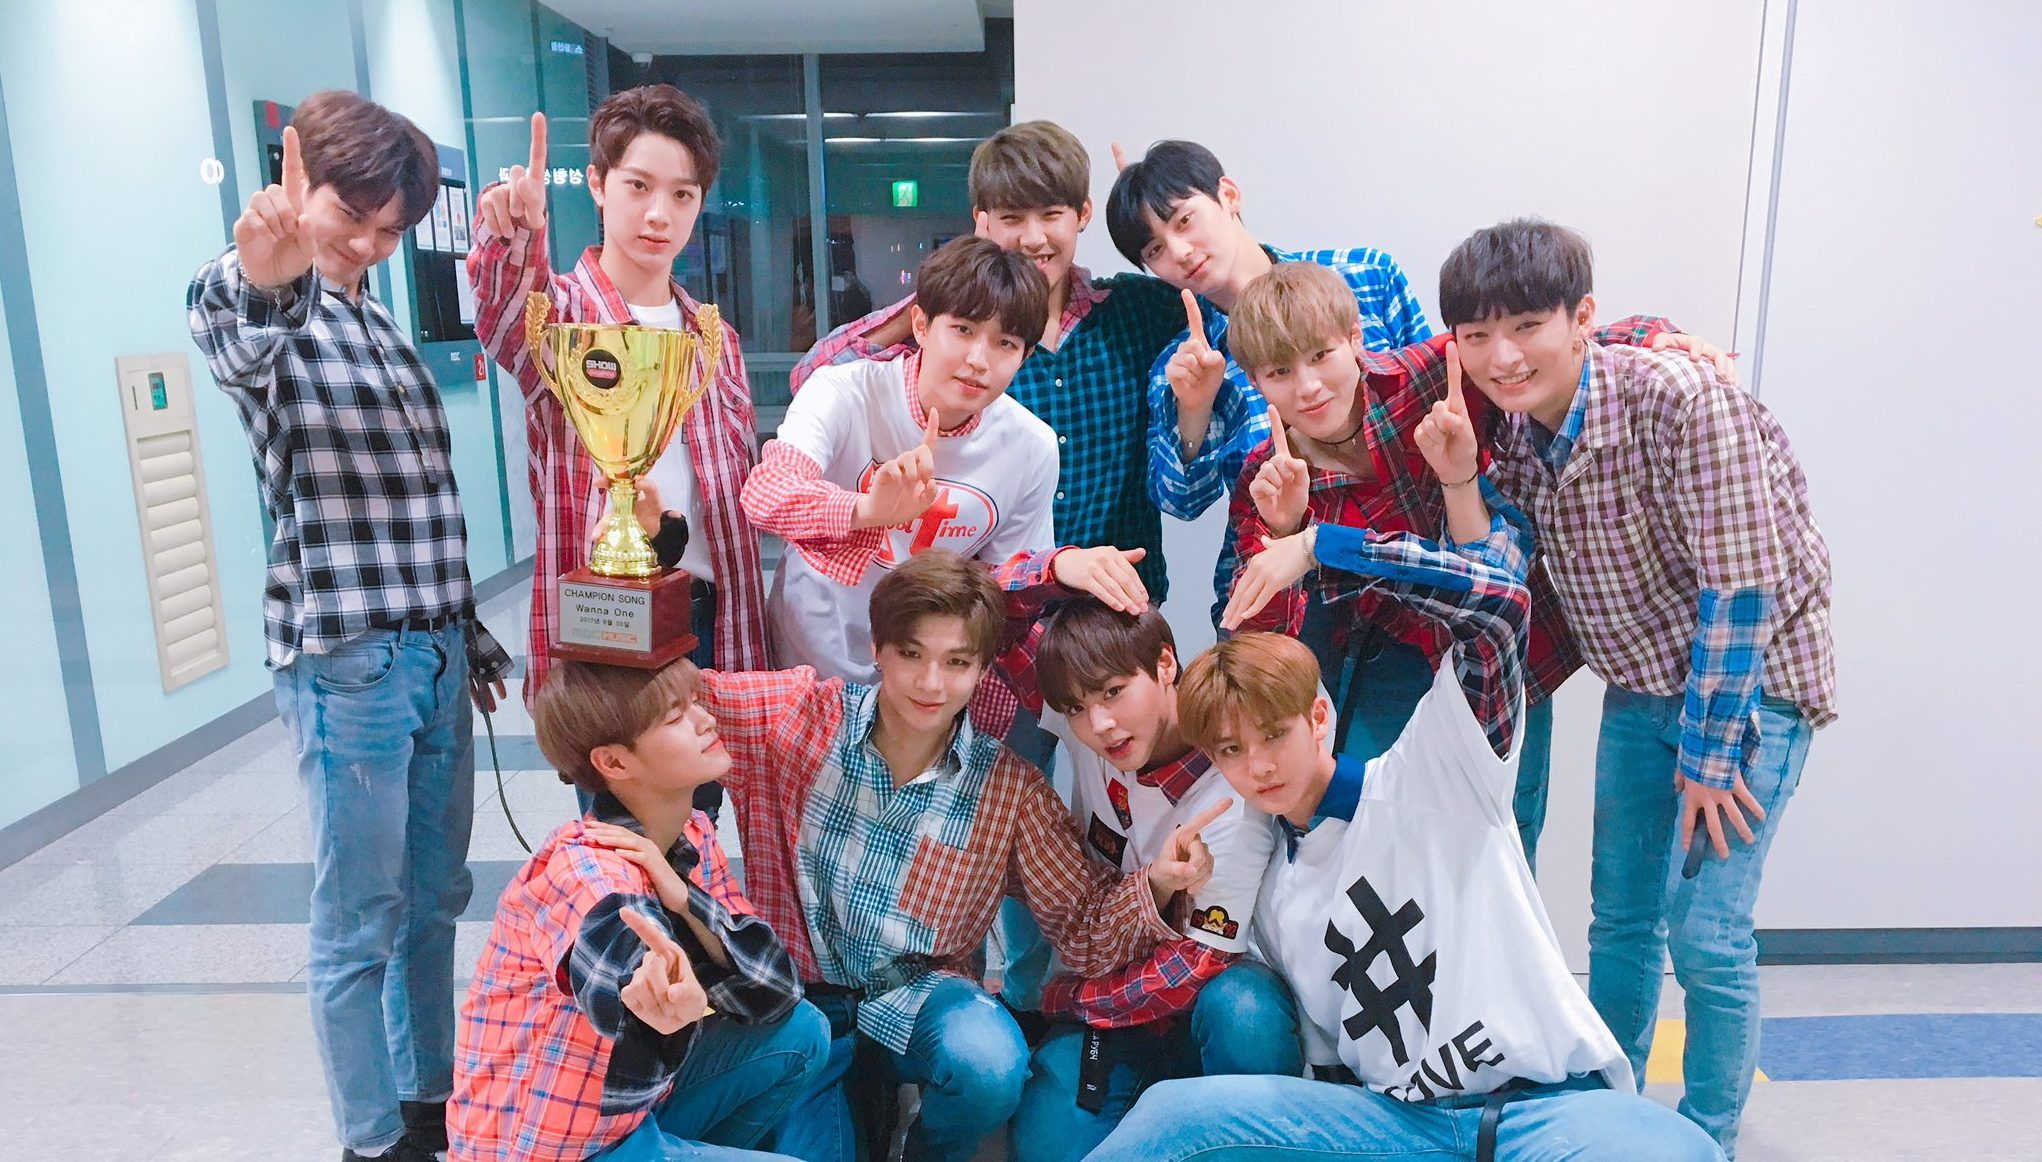 Watch Wanna One Takes th Win And Triple Crown For ucEnergeticud On